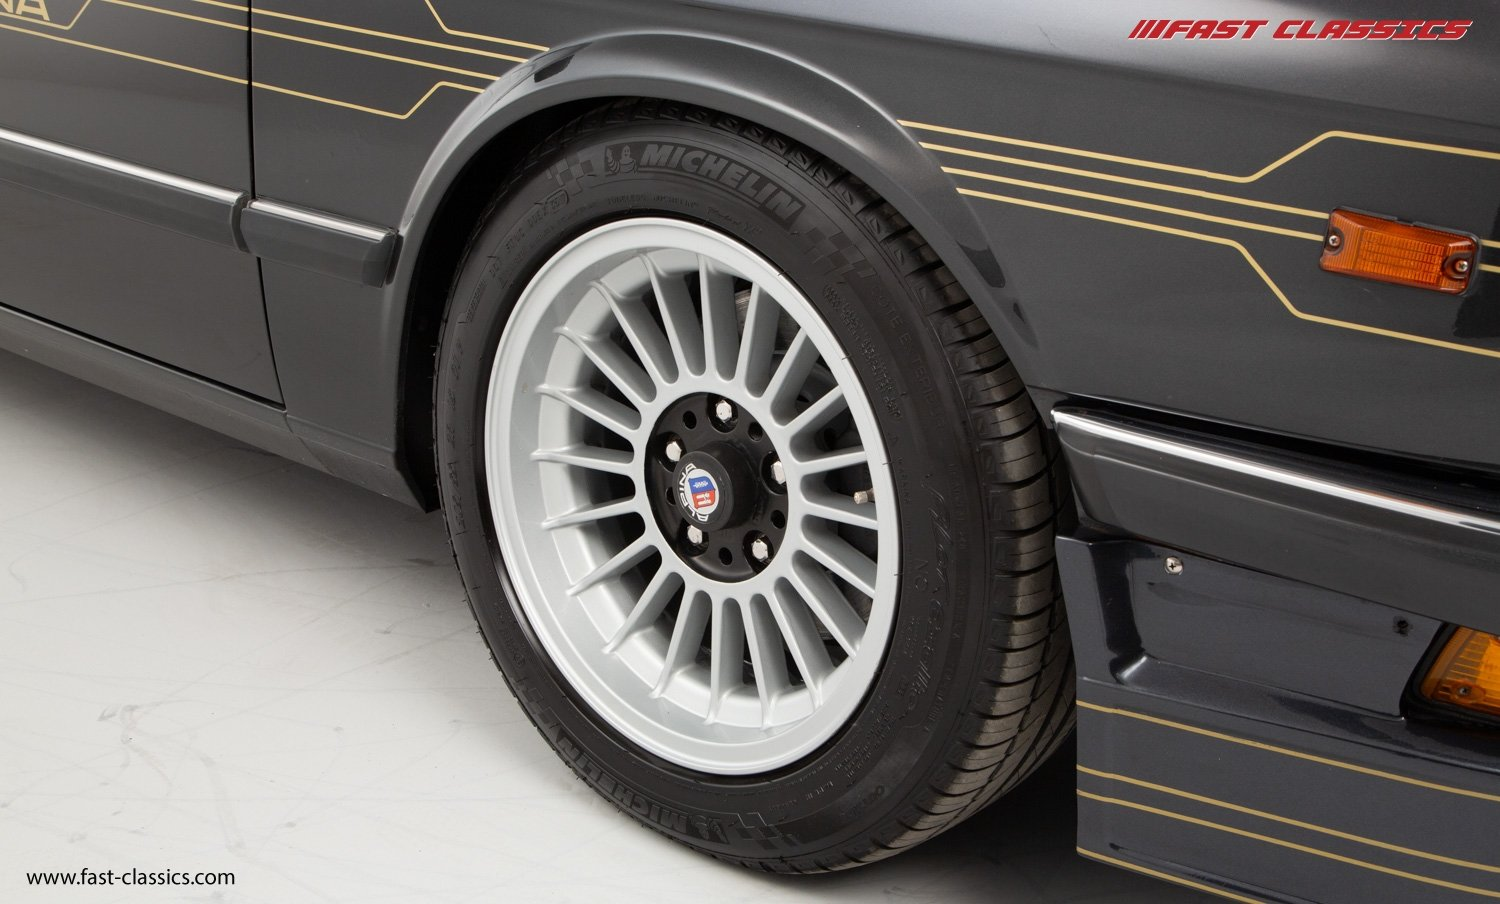 1986 ALPINA B7 TURBO/1 // 1 OF 42 HIGH POWER CATALYST CARS  For Sale (picture 23 of 24)